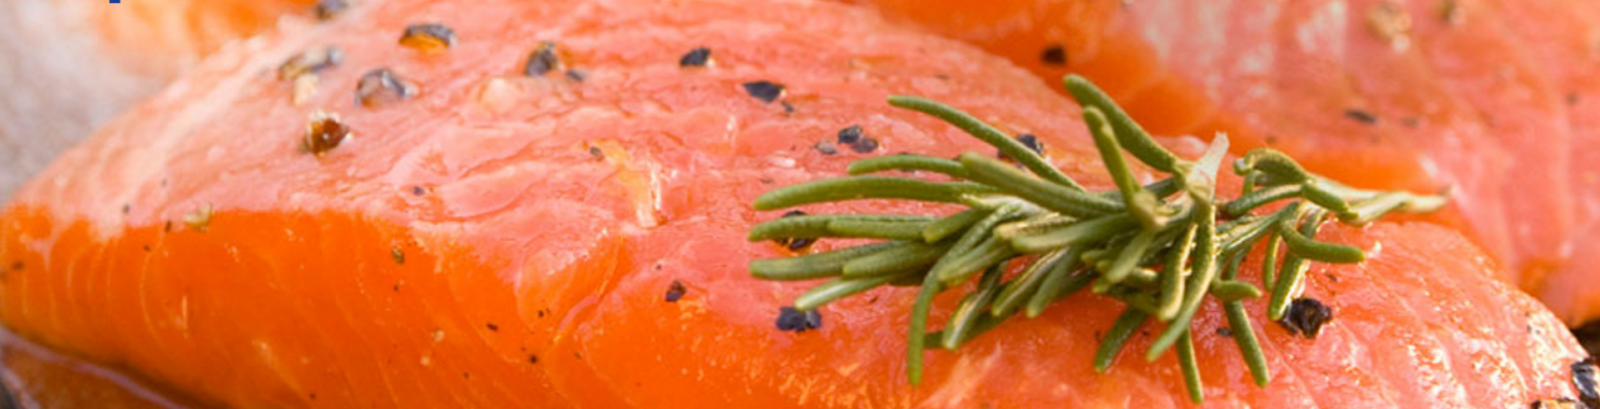 Fast growing AquAdvantage Atlantic Salmon approved by FDA